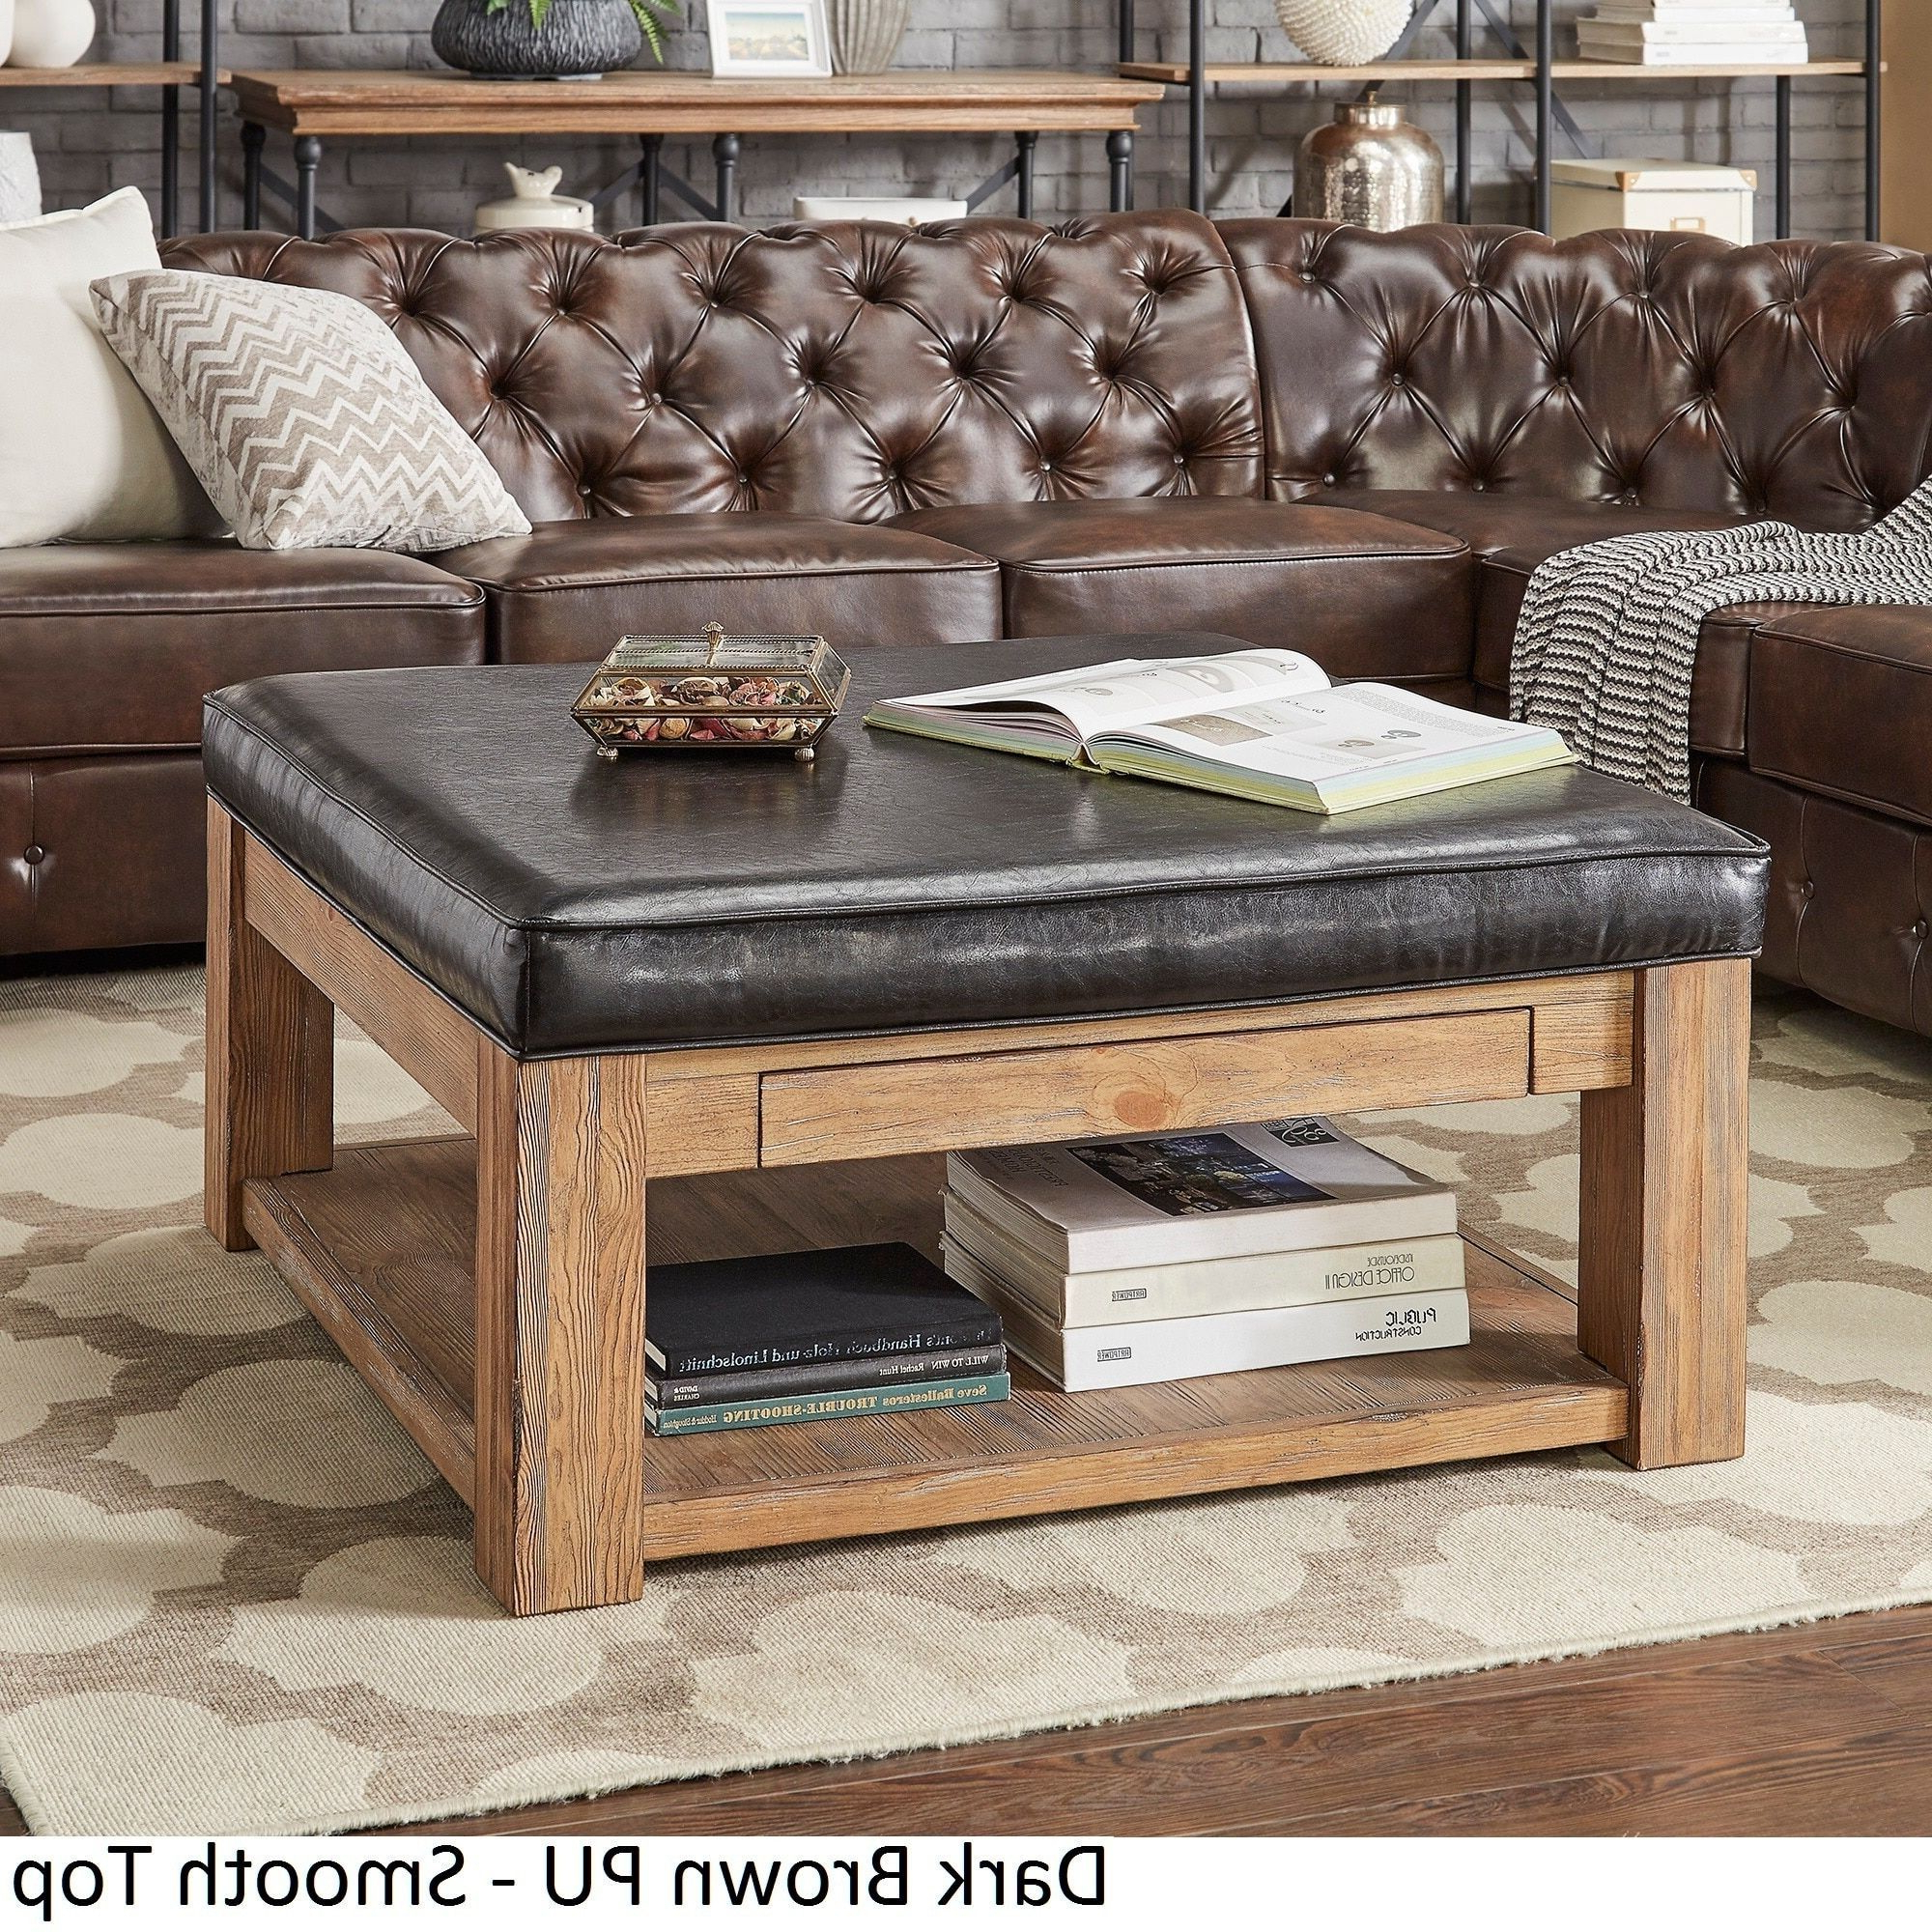 Widely Used Lennon Pine Square Storage Ottoman Coffee Tables With Regard To Lennon Pine Square Storage Ottoman Coffee Tabletribecca (View 13 of 20)